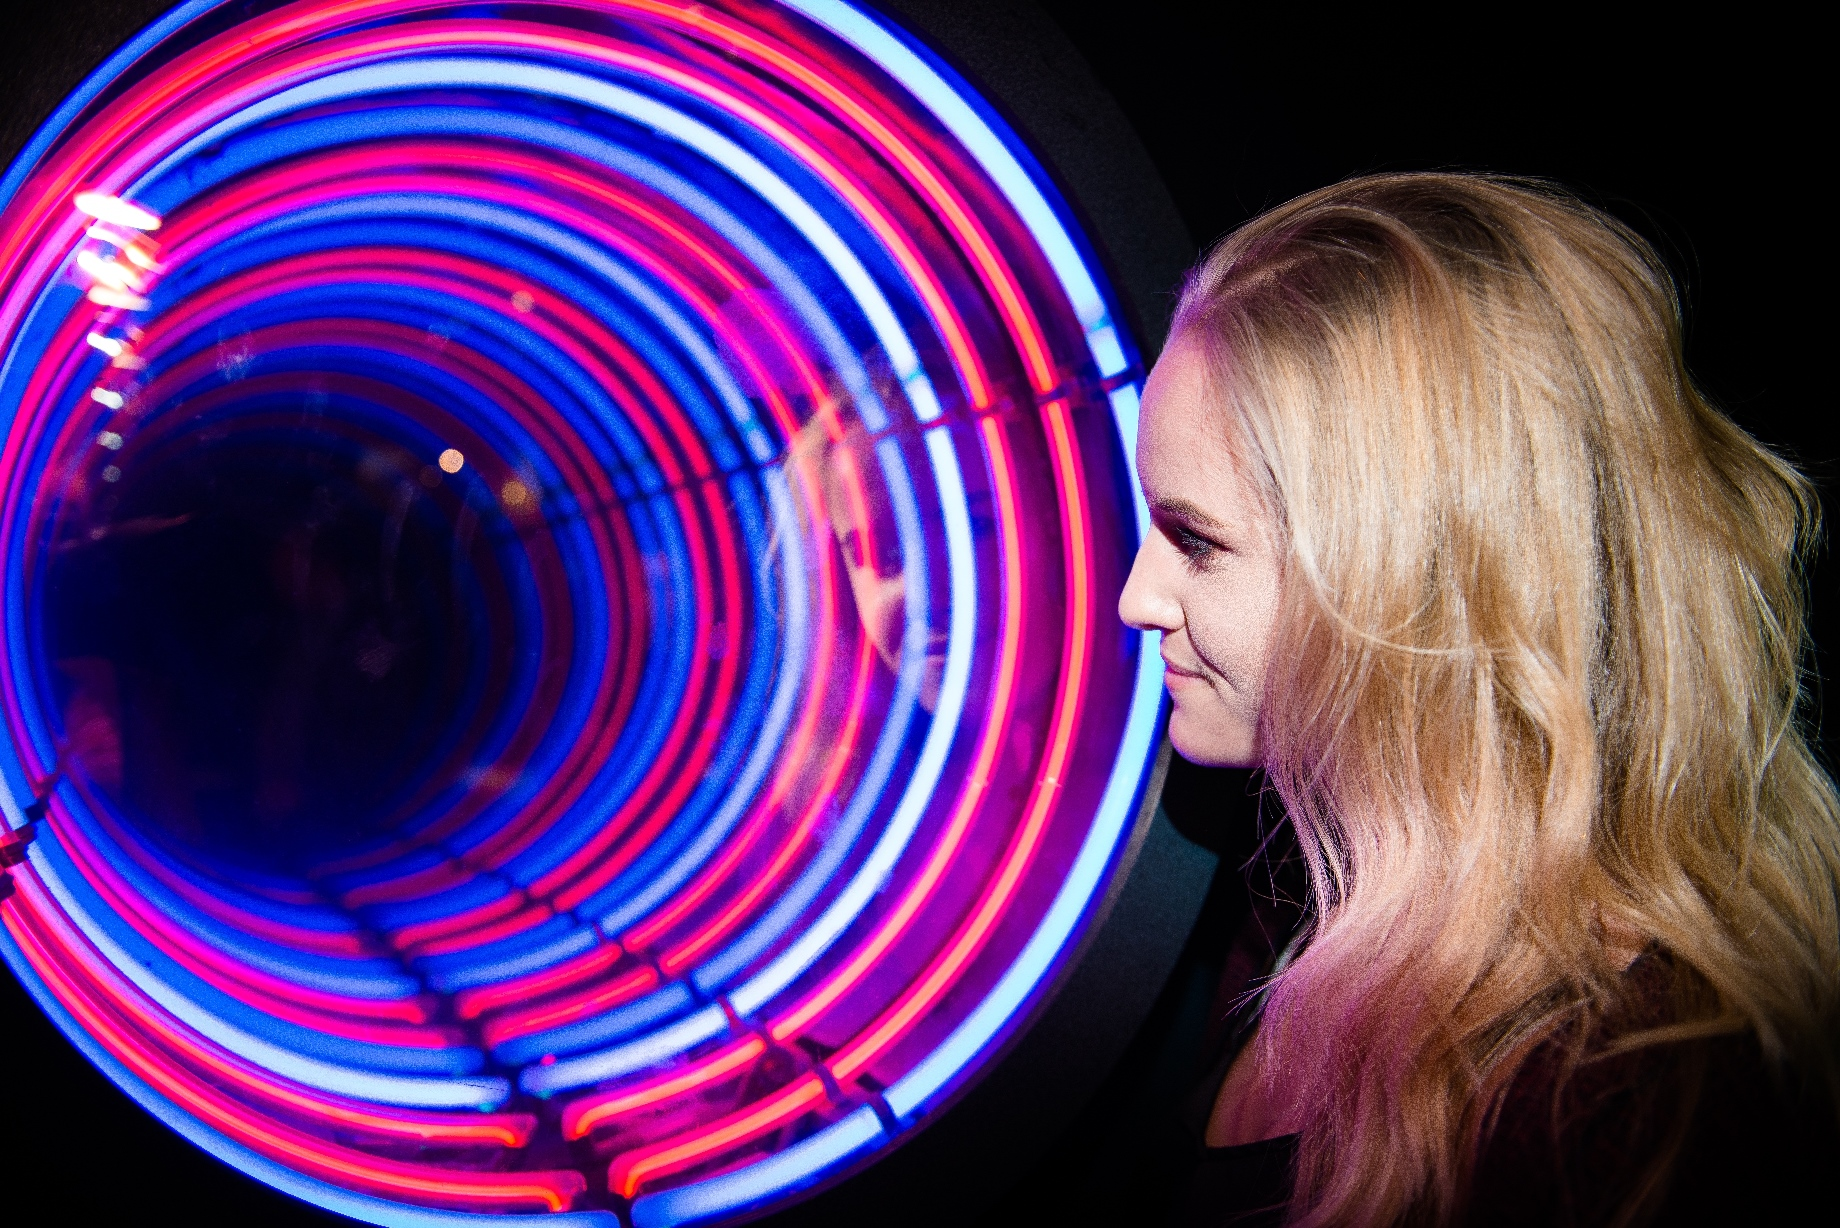 Infinity Tunnel, Magic Gallery, Camera Obscura & World of Illusions